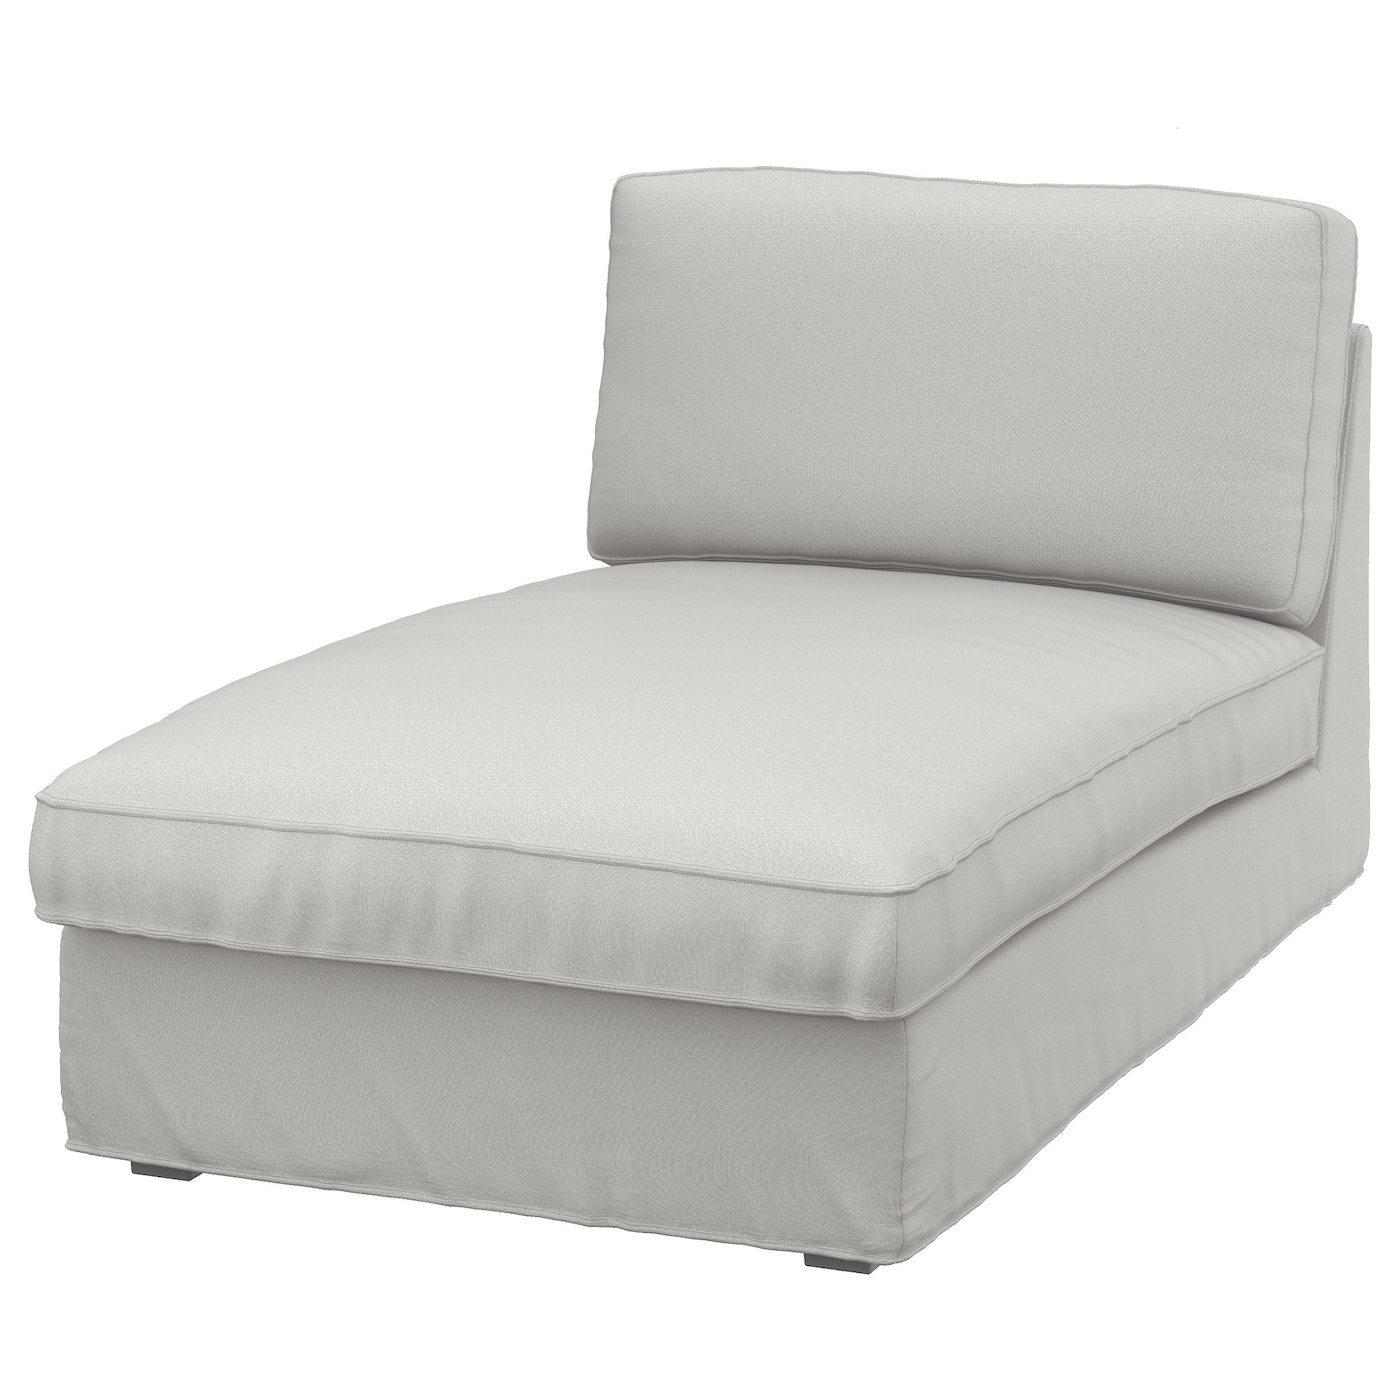 IKEA KIVIK chaise longue The cover is easy to keep clean as it is removable and can be dry cleaned.